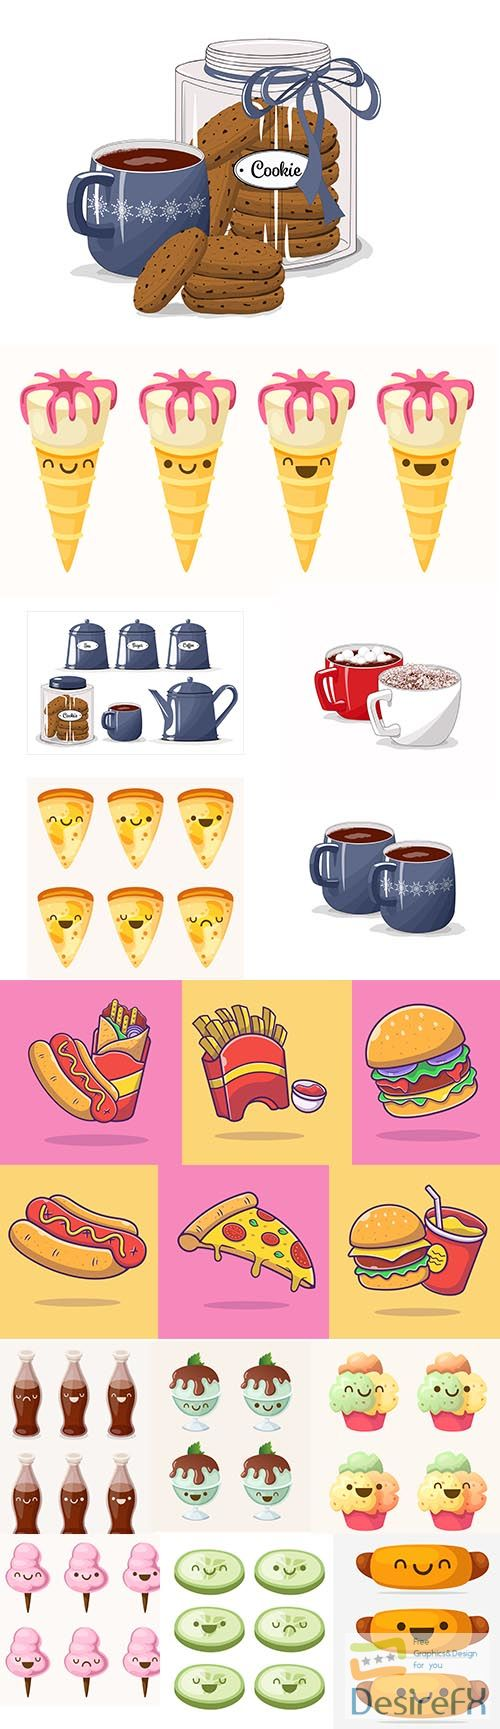 Cartoon food and drink illustration set